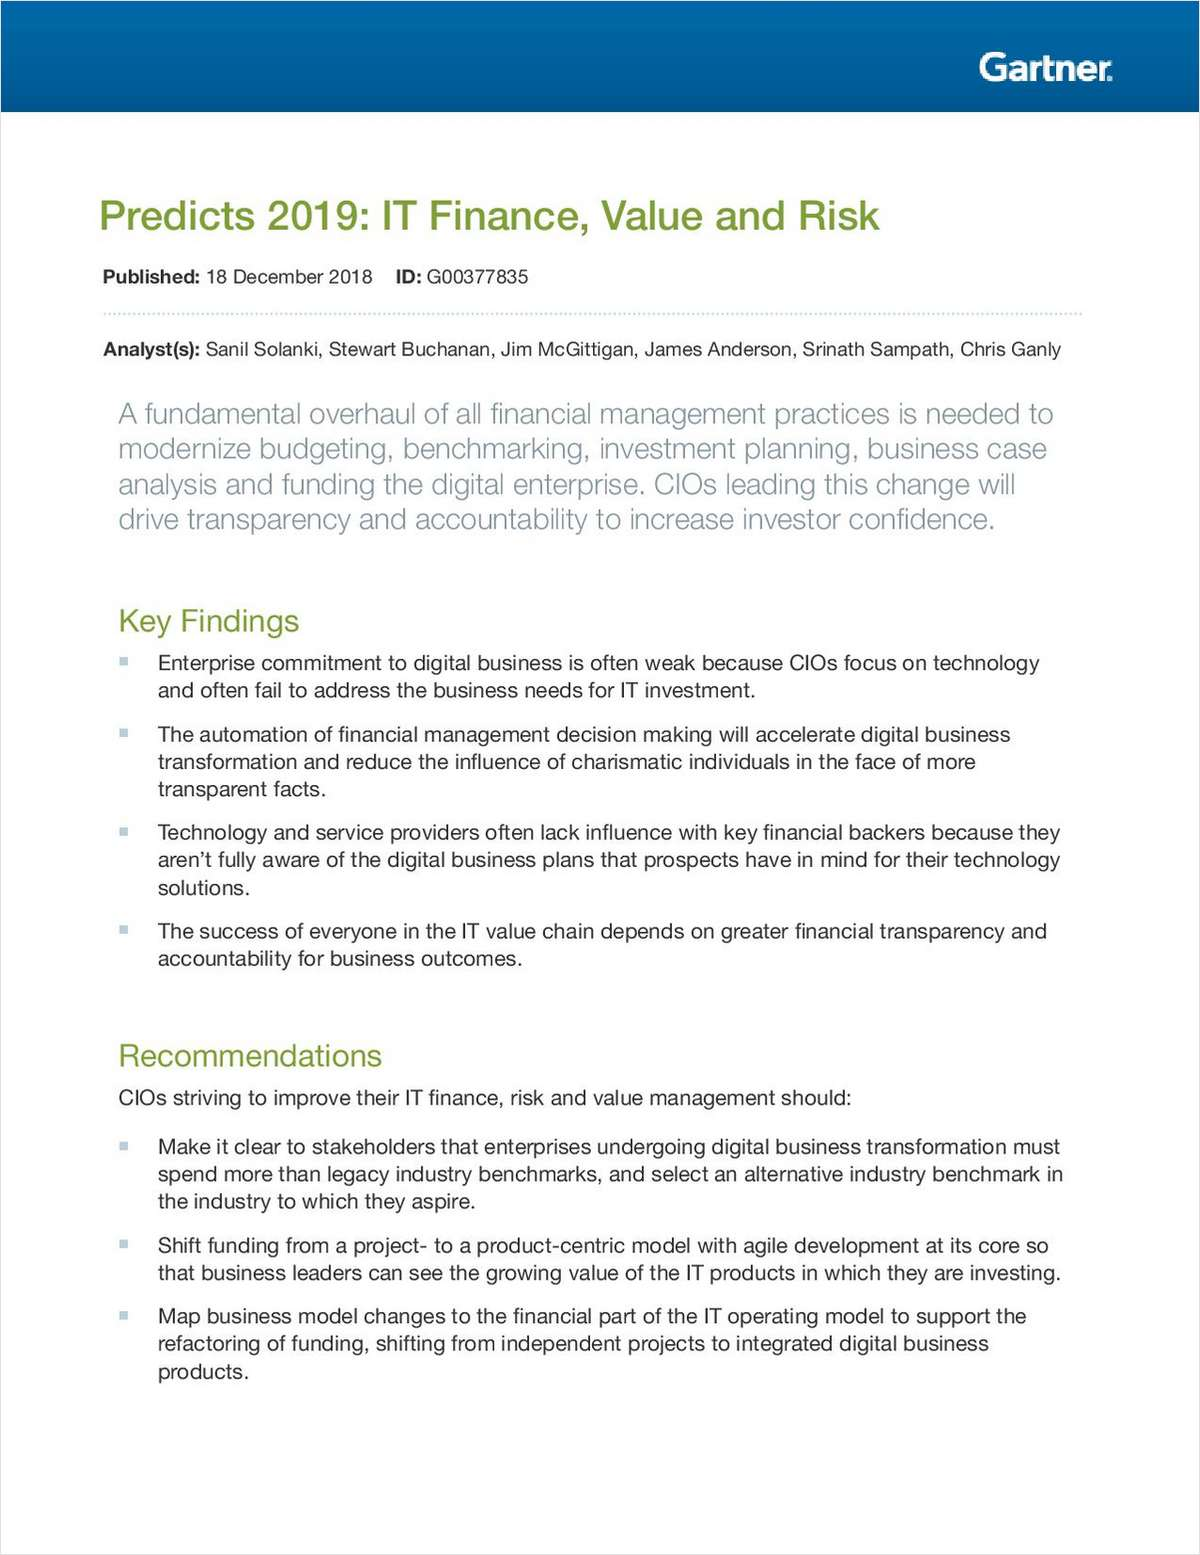 Predicts 2019: IT Finance, Value and Risk